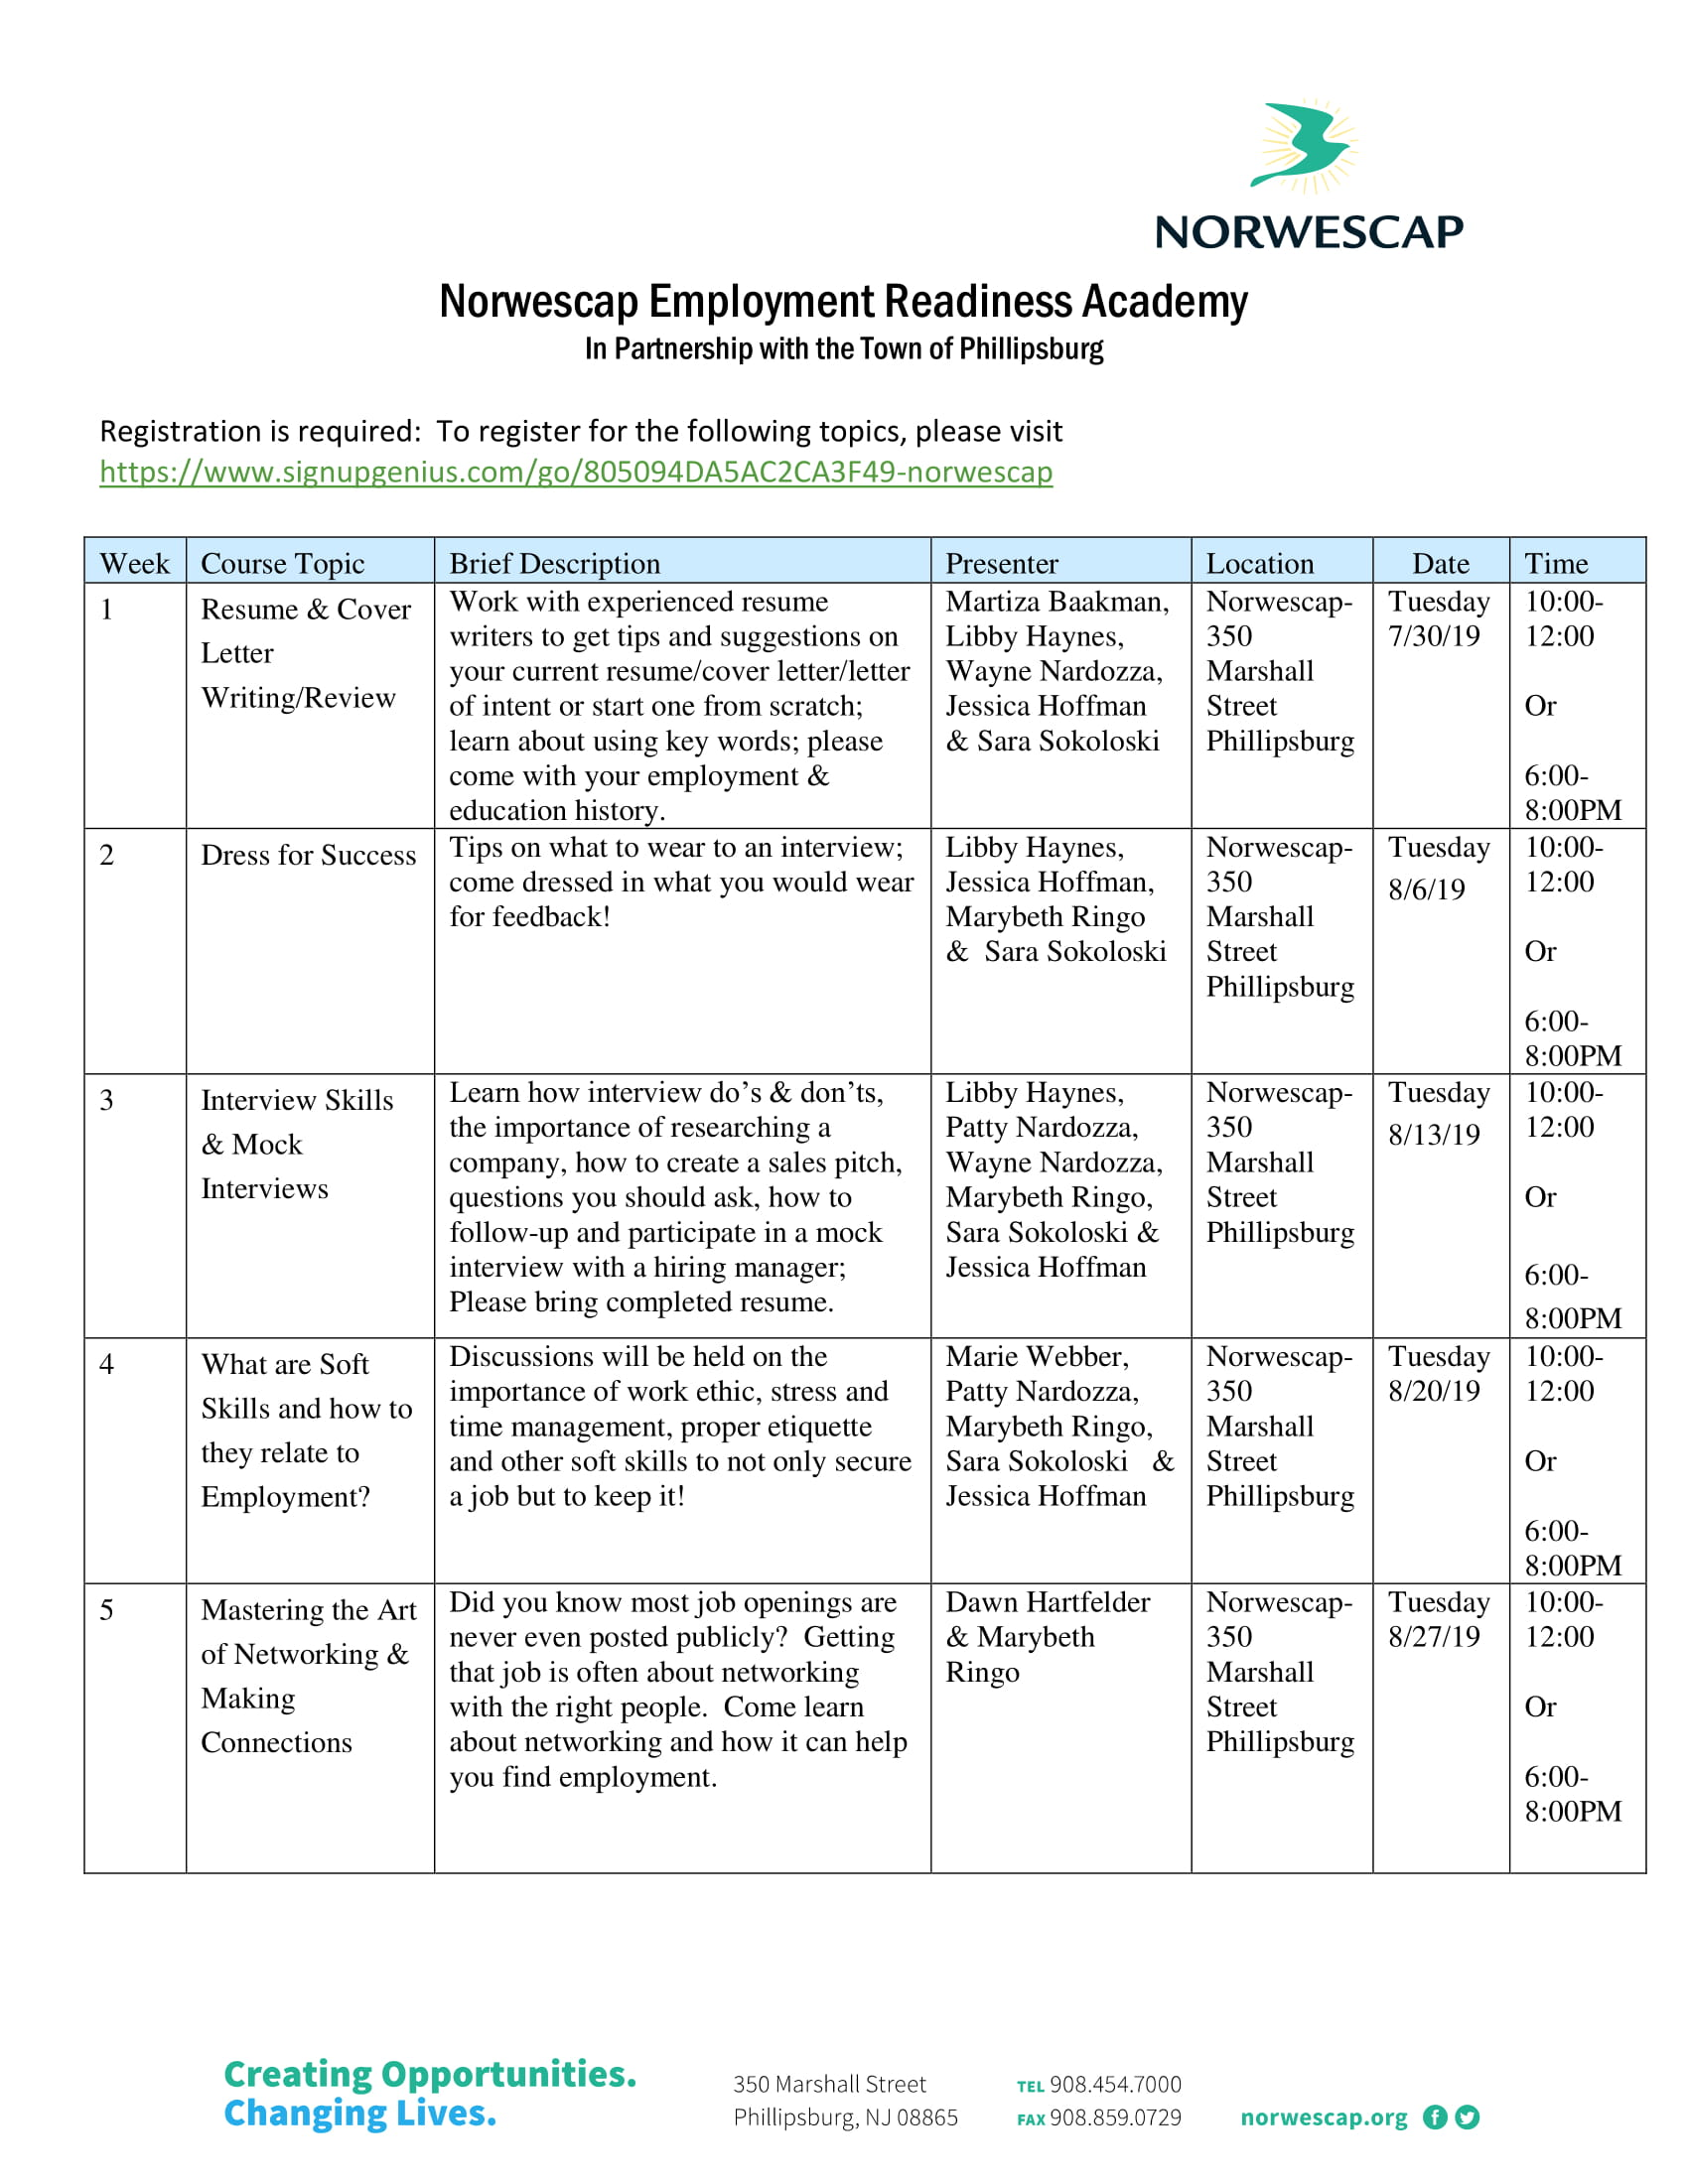 Employment Readiness Academy: Resume & Cover Letter Writing